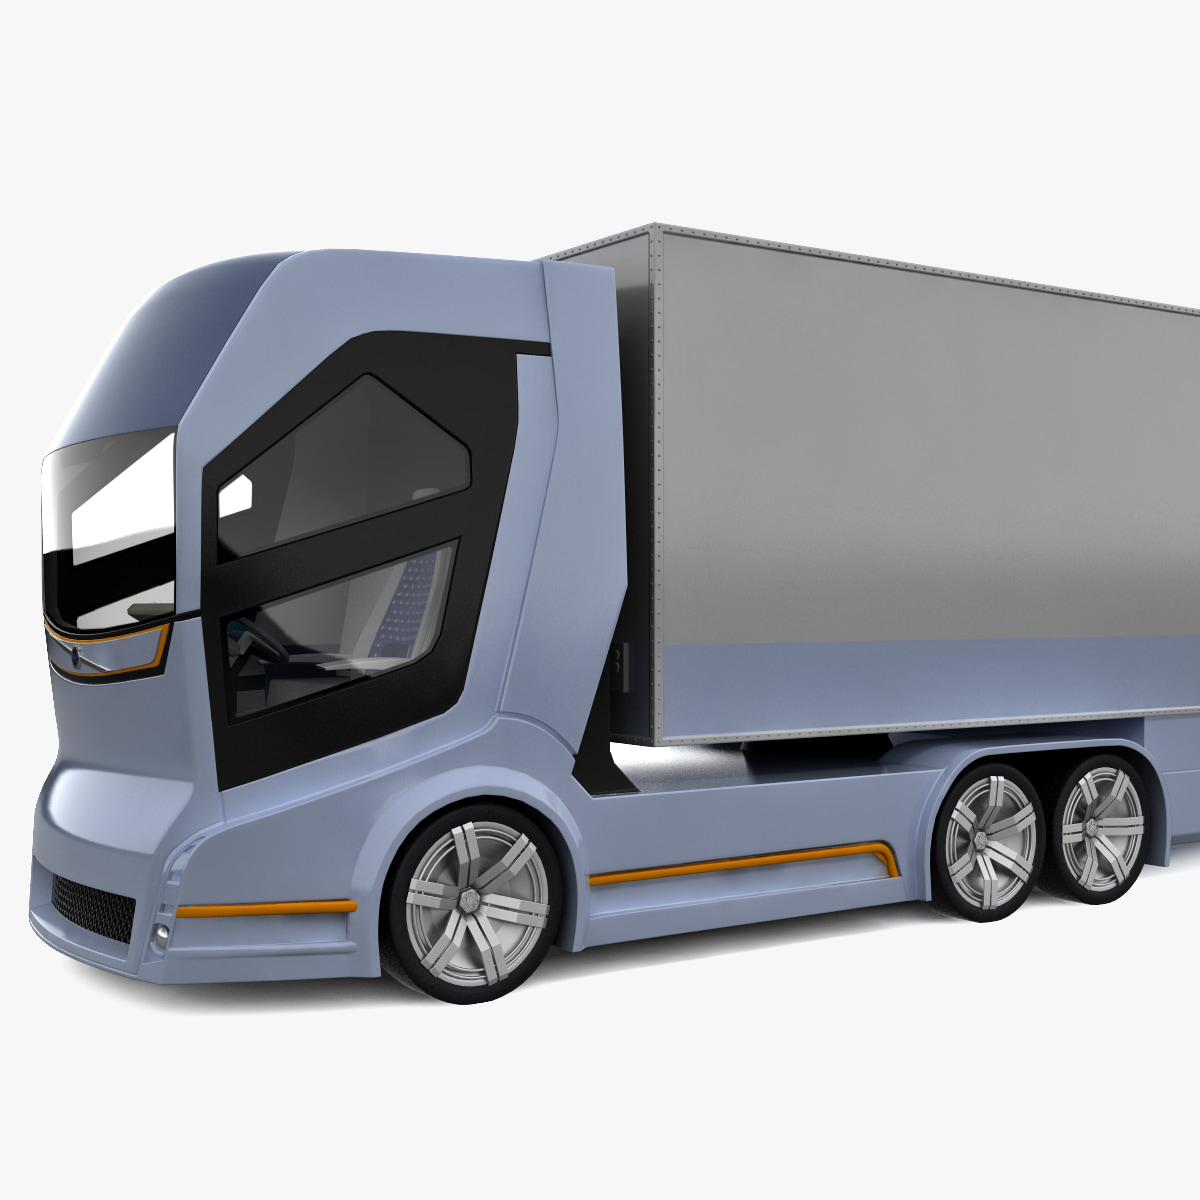 Concept_Truck_Volvo_Vision_2020_00.jpg